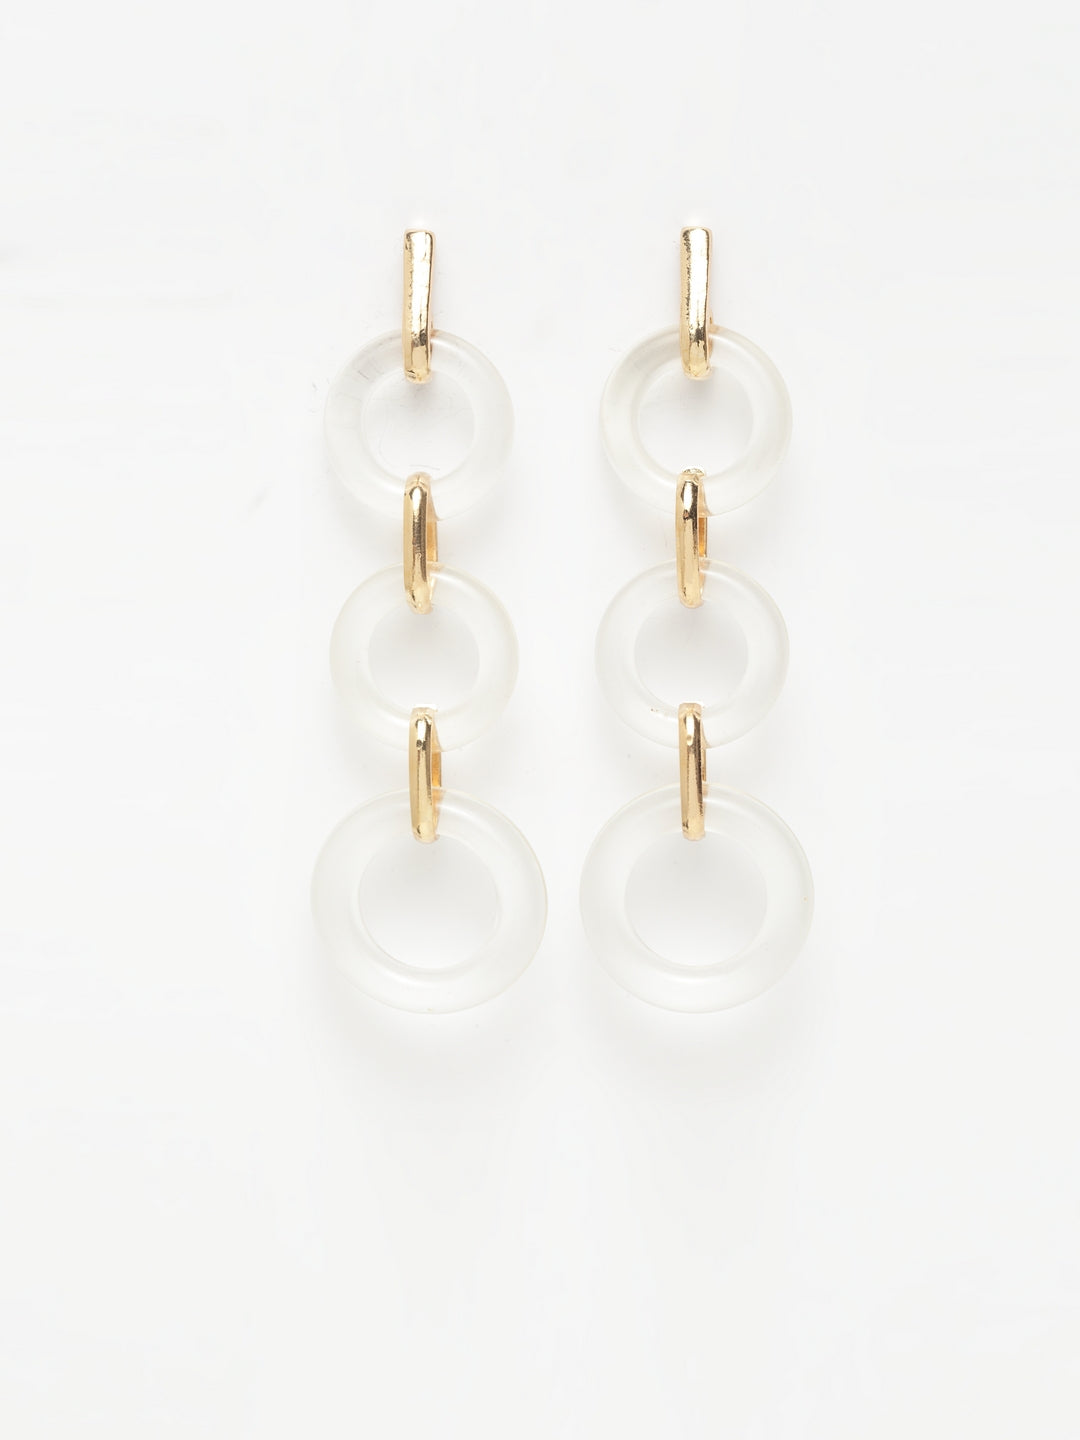 Avant-Garde Paris Long Acrylic Statement Earrings